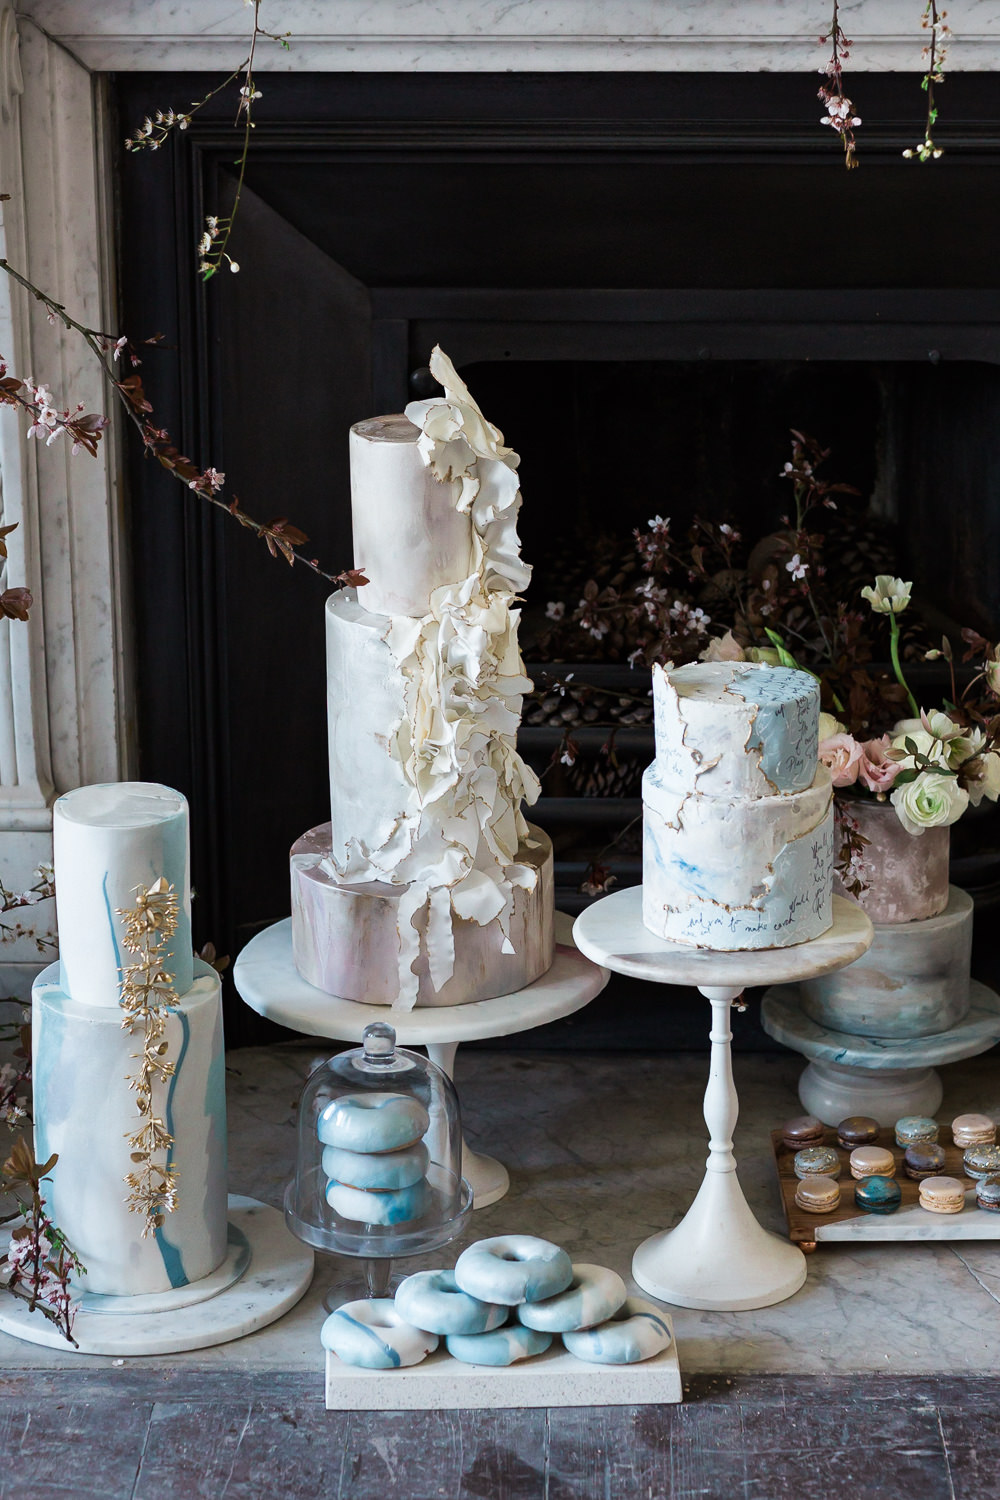 Modern Dance Ballet Inspired Editorial Fine Art Somerley House Kate Burt Cakes | Romantic Soft Wedding Ideas Siobhan H Photography